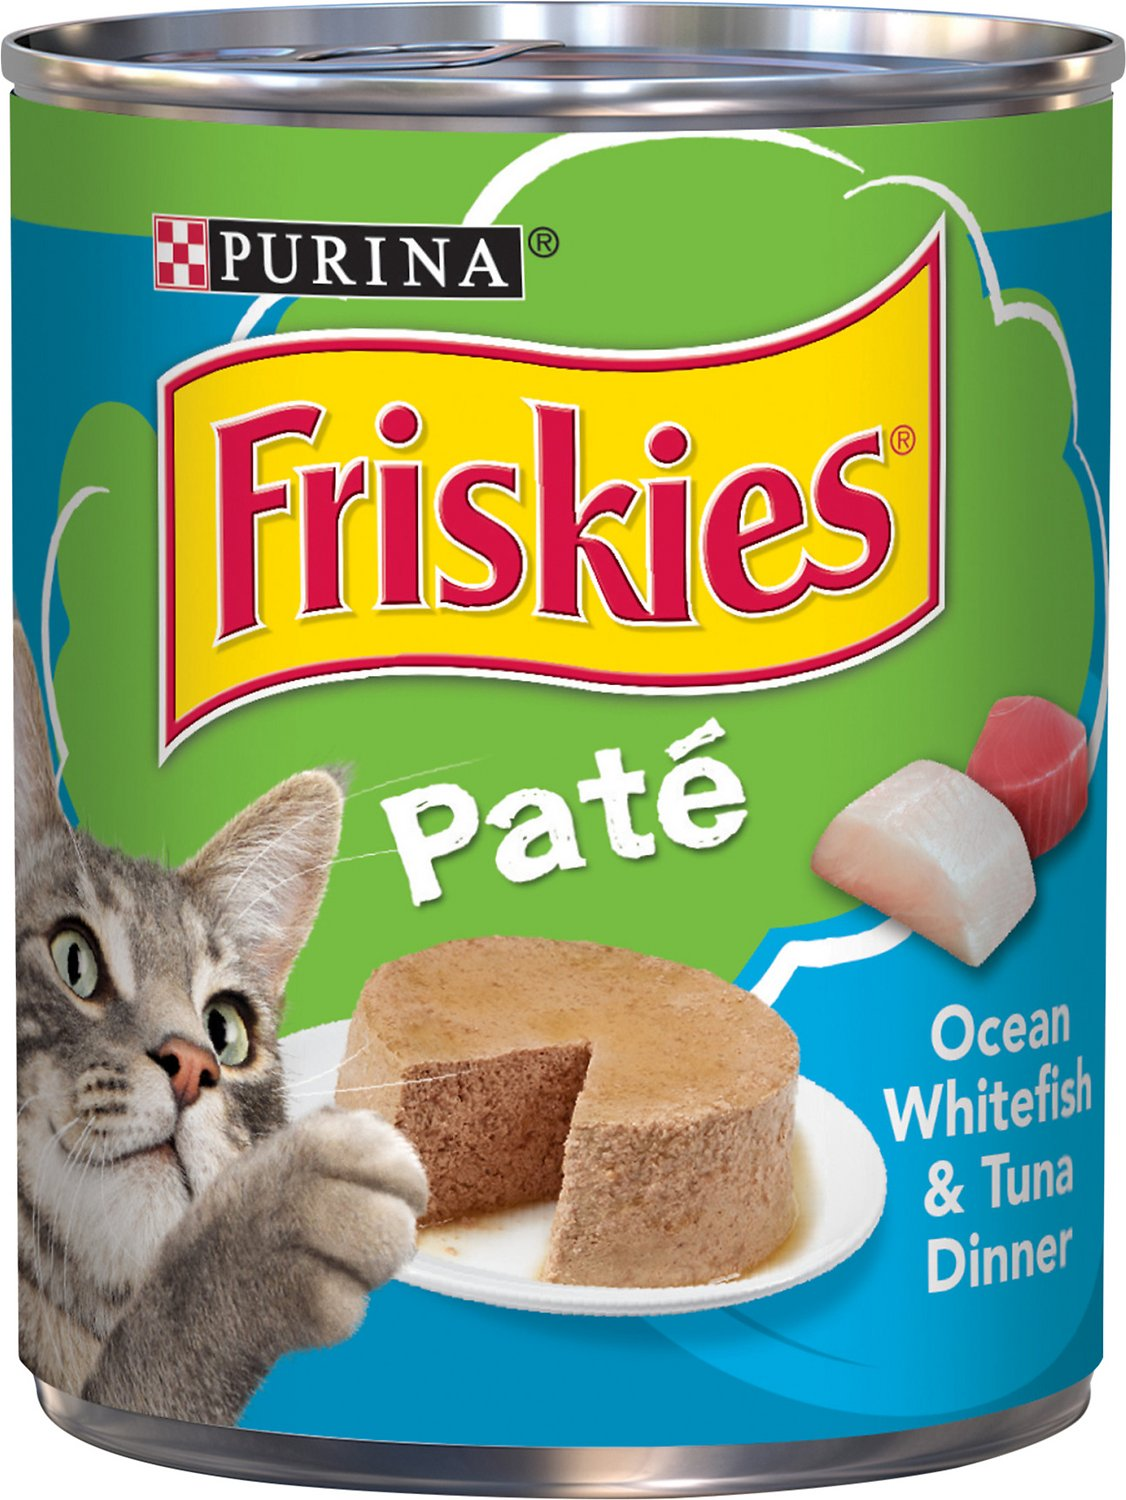 Friskies Pate Canned Cat Food Calories